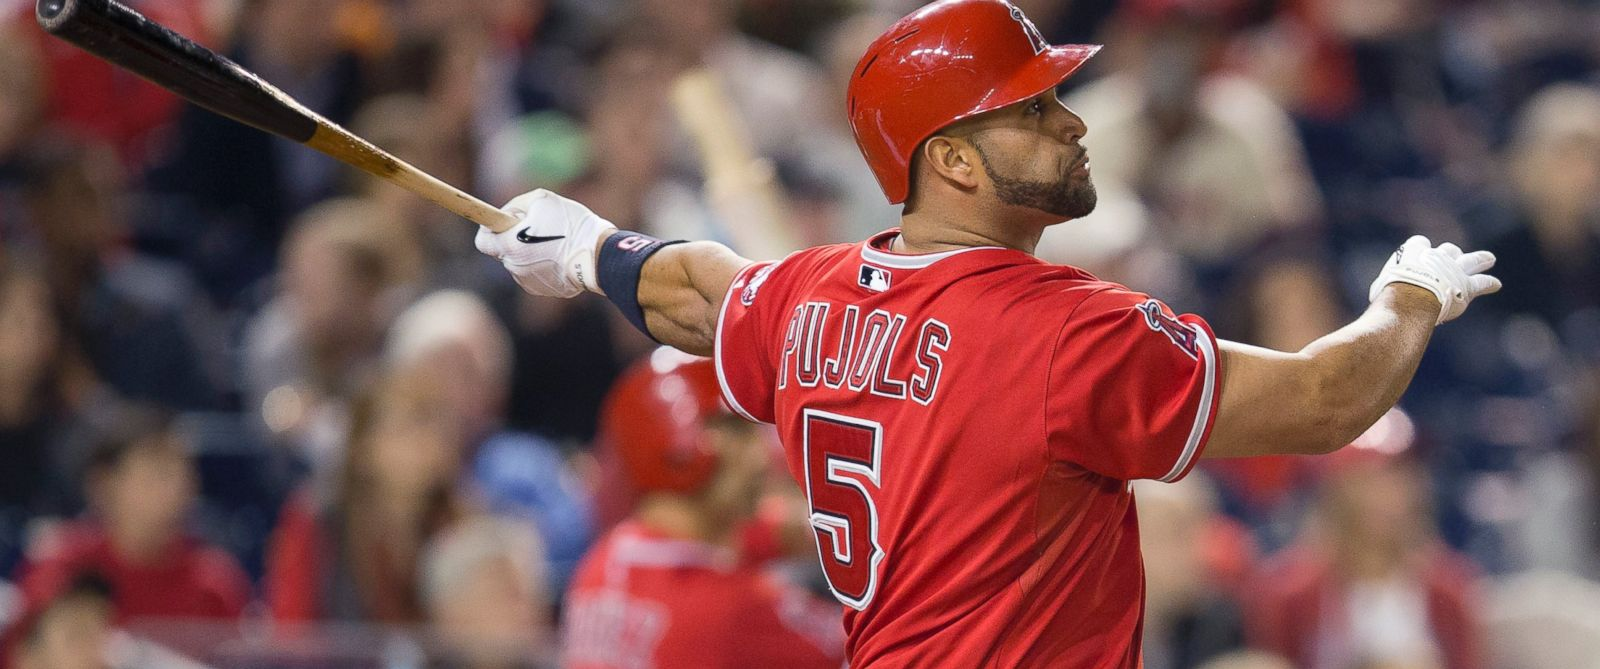 PHOTO: Los Angeles Angels first baseman Albert Pujols watches the ball after connecting for his 500th career home run,April 22, 2014.